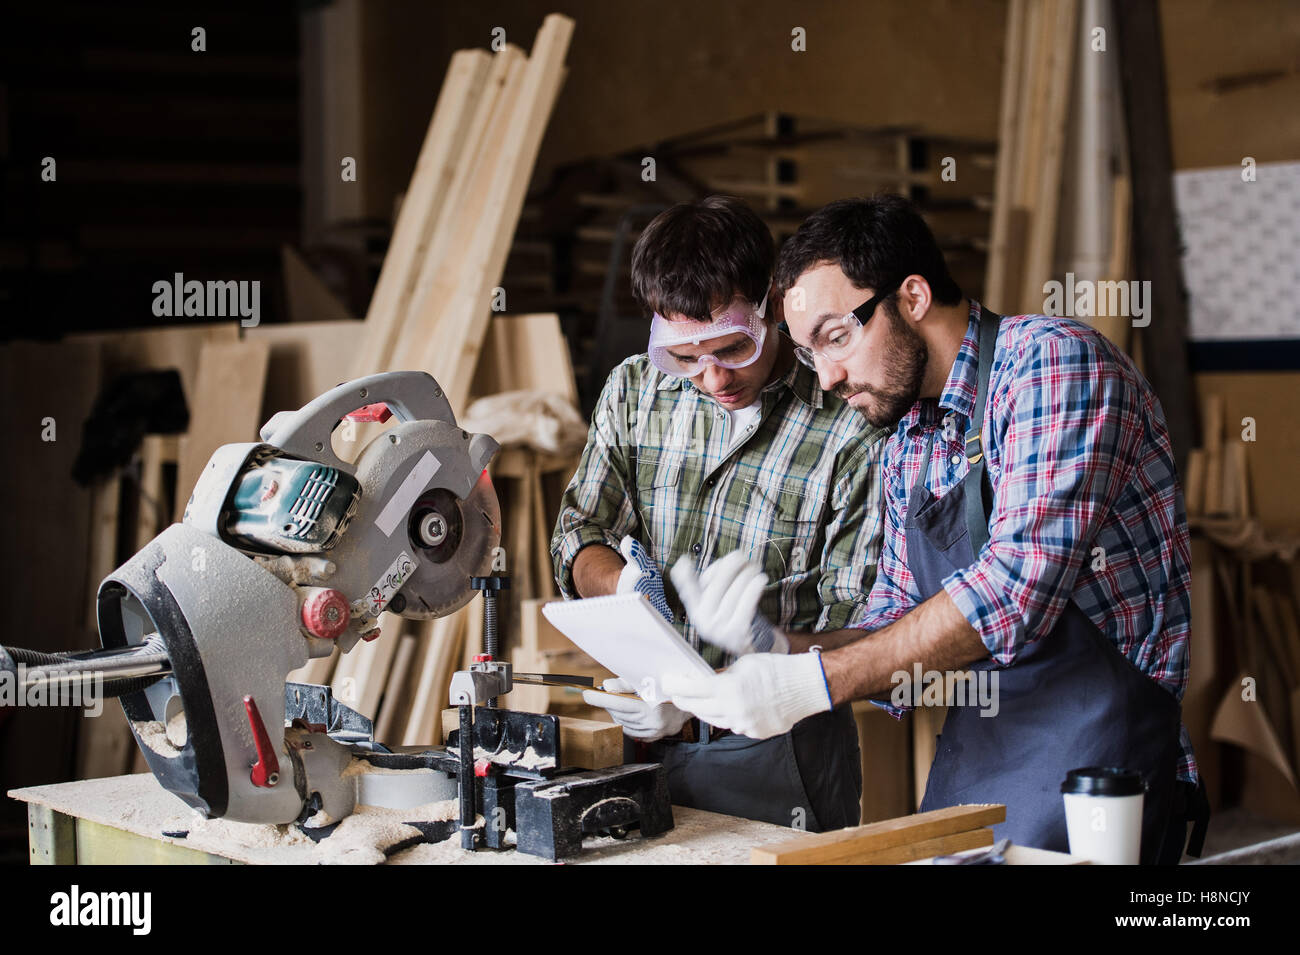 angry boss and worker together in a carpenter's workshop - Stock Image